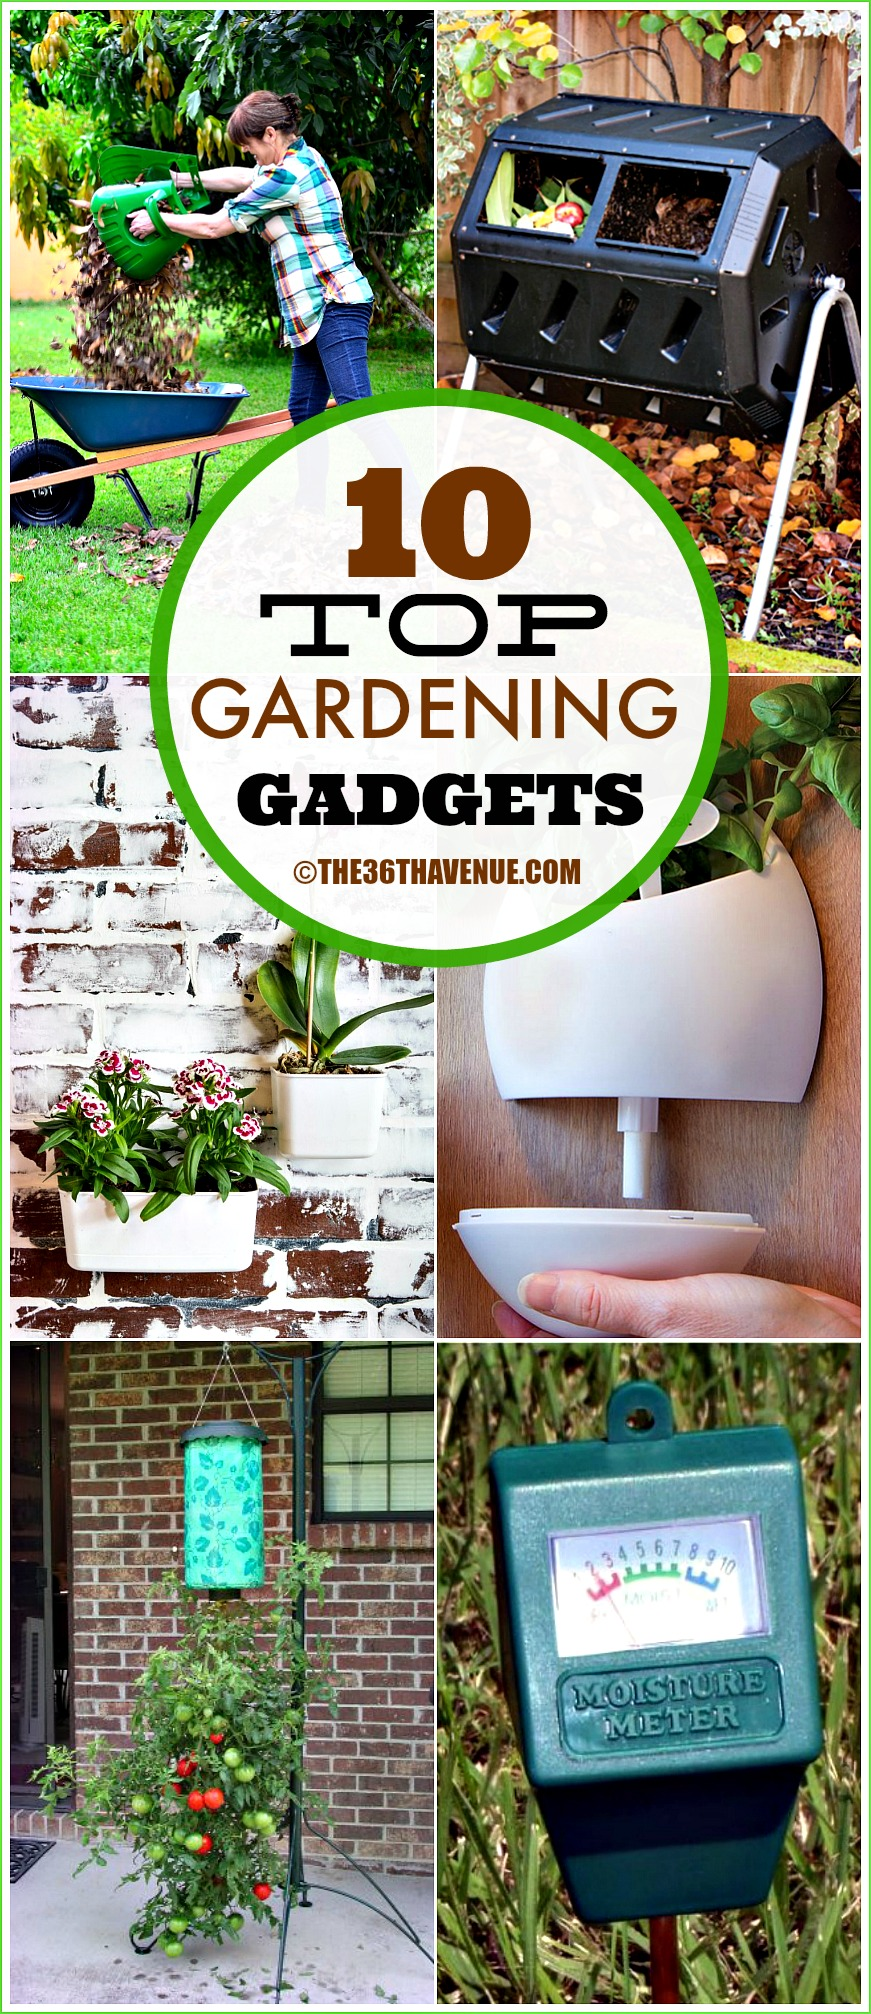 PageLines- Top10GardeningGadgetsthe36thavenue.com.jpg